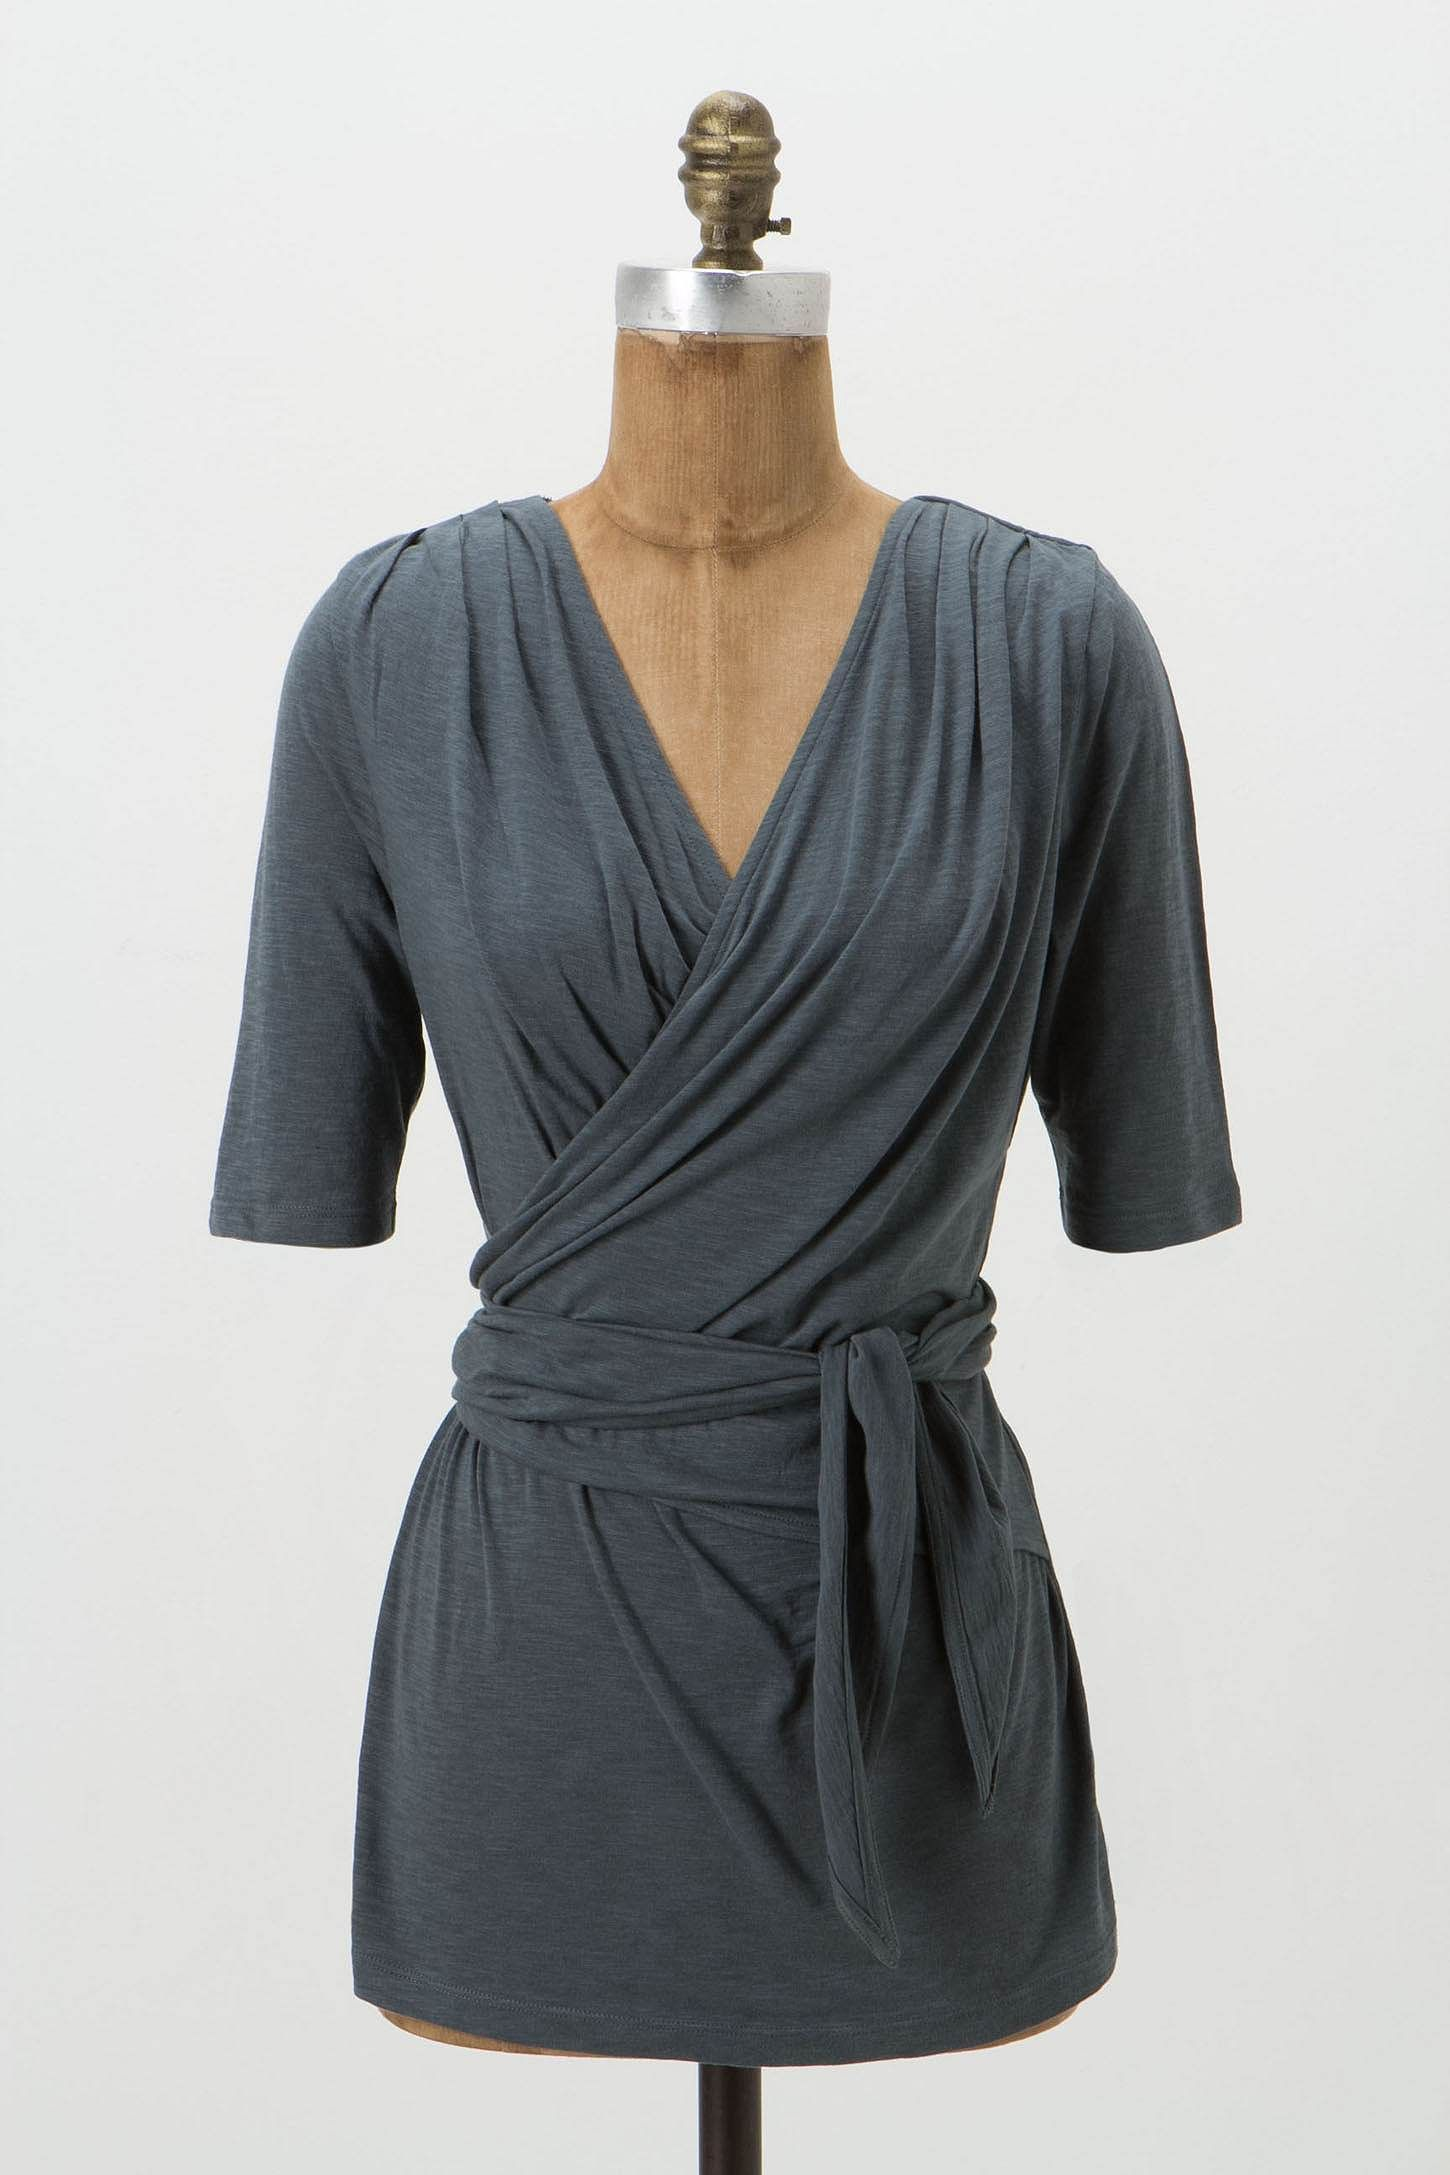 Eliora Top from Anthropologie. I think this would be perfect for a T2. ~agreed, love the uneven gathering effect